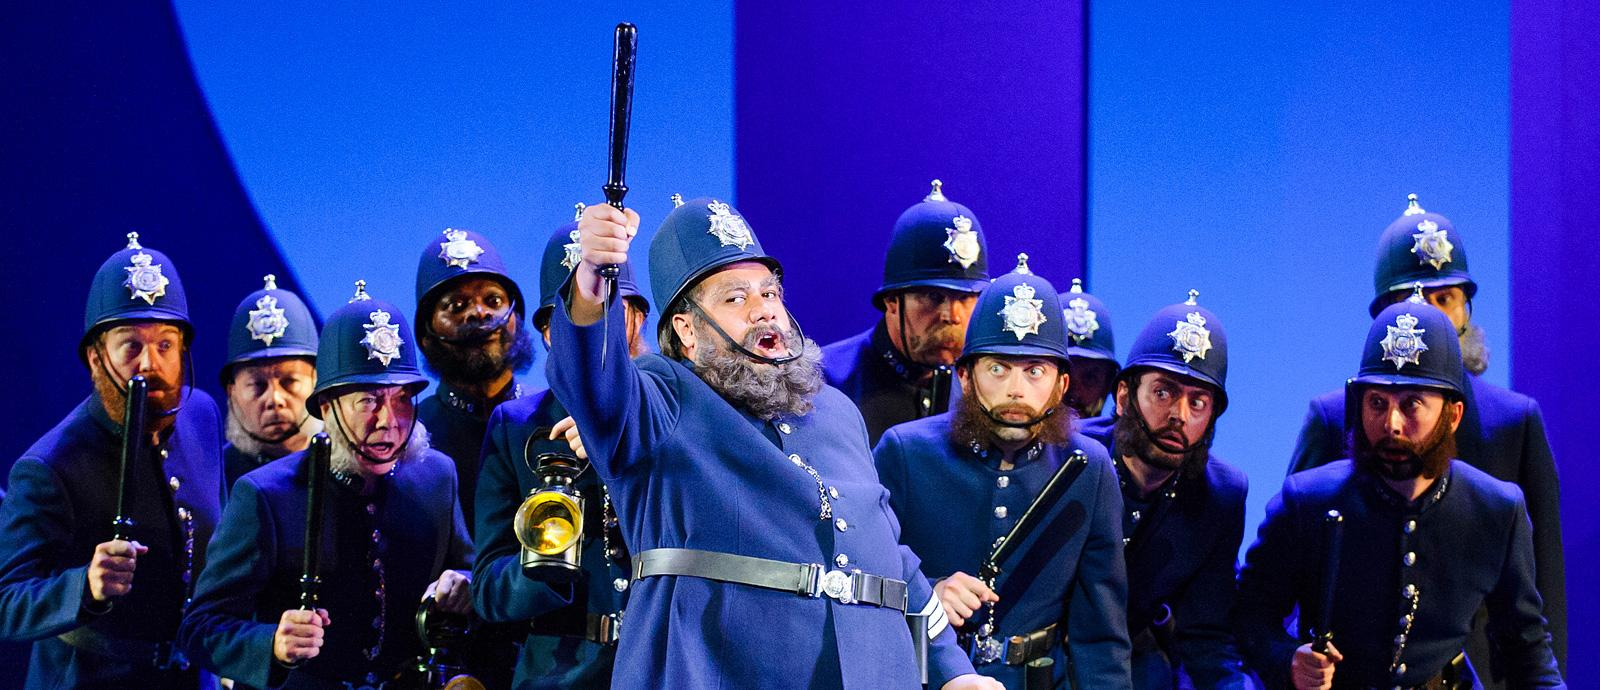 ENO's The Pirates of Penzance - Jonathan Lemalu as Sergeant of Police and Company. Photo by Tristram Kenton